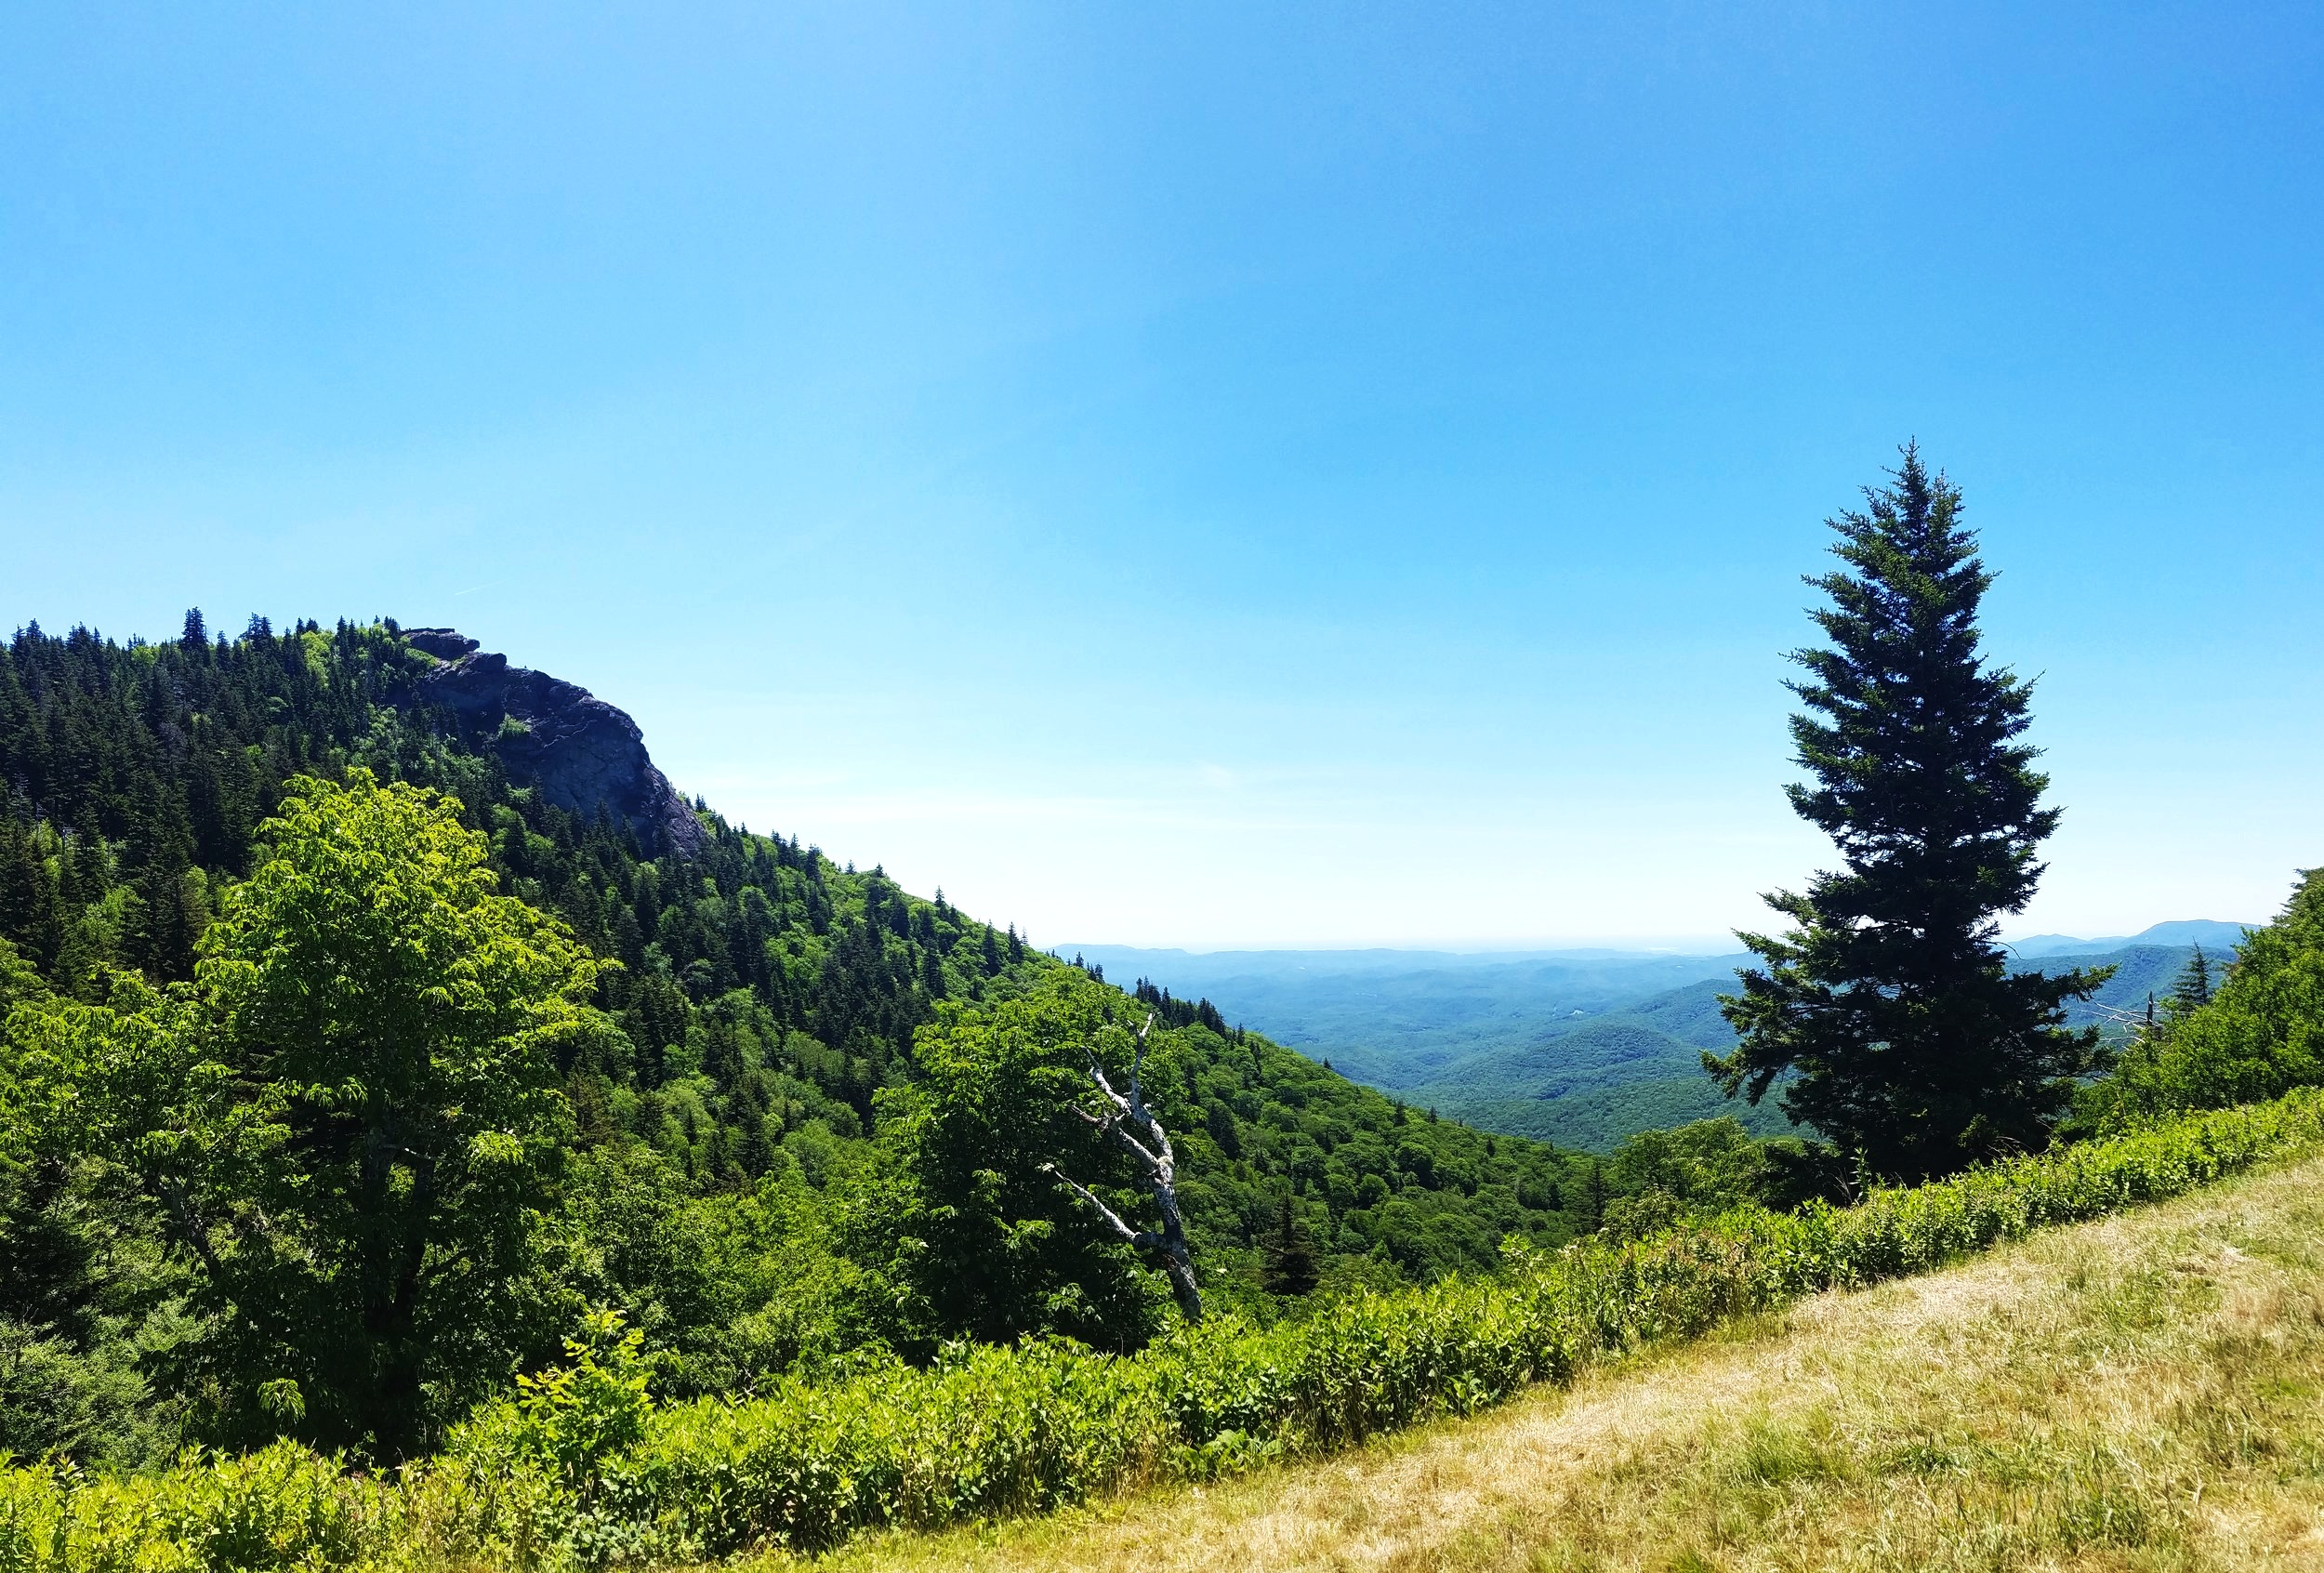 If Pisgah National Forest is good for one thing, it's views like this